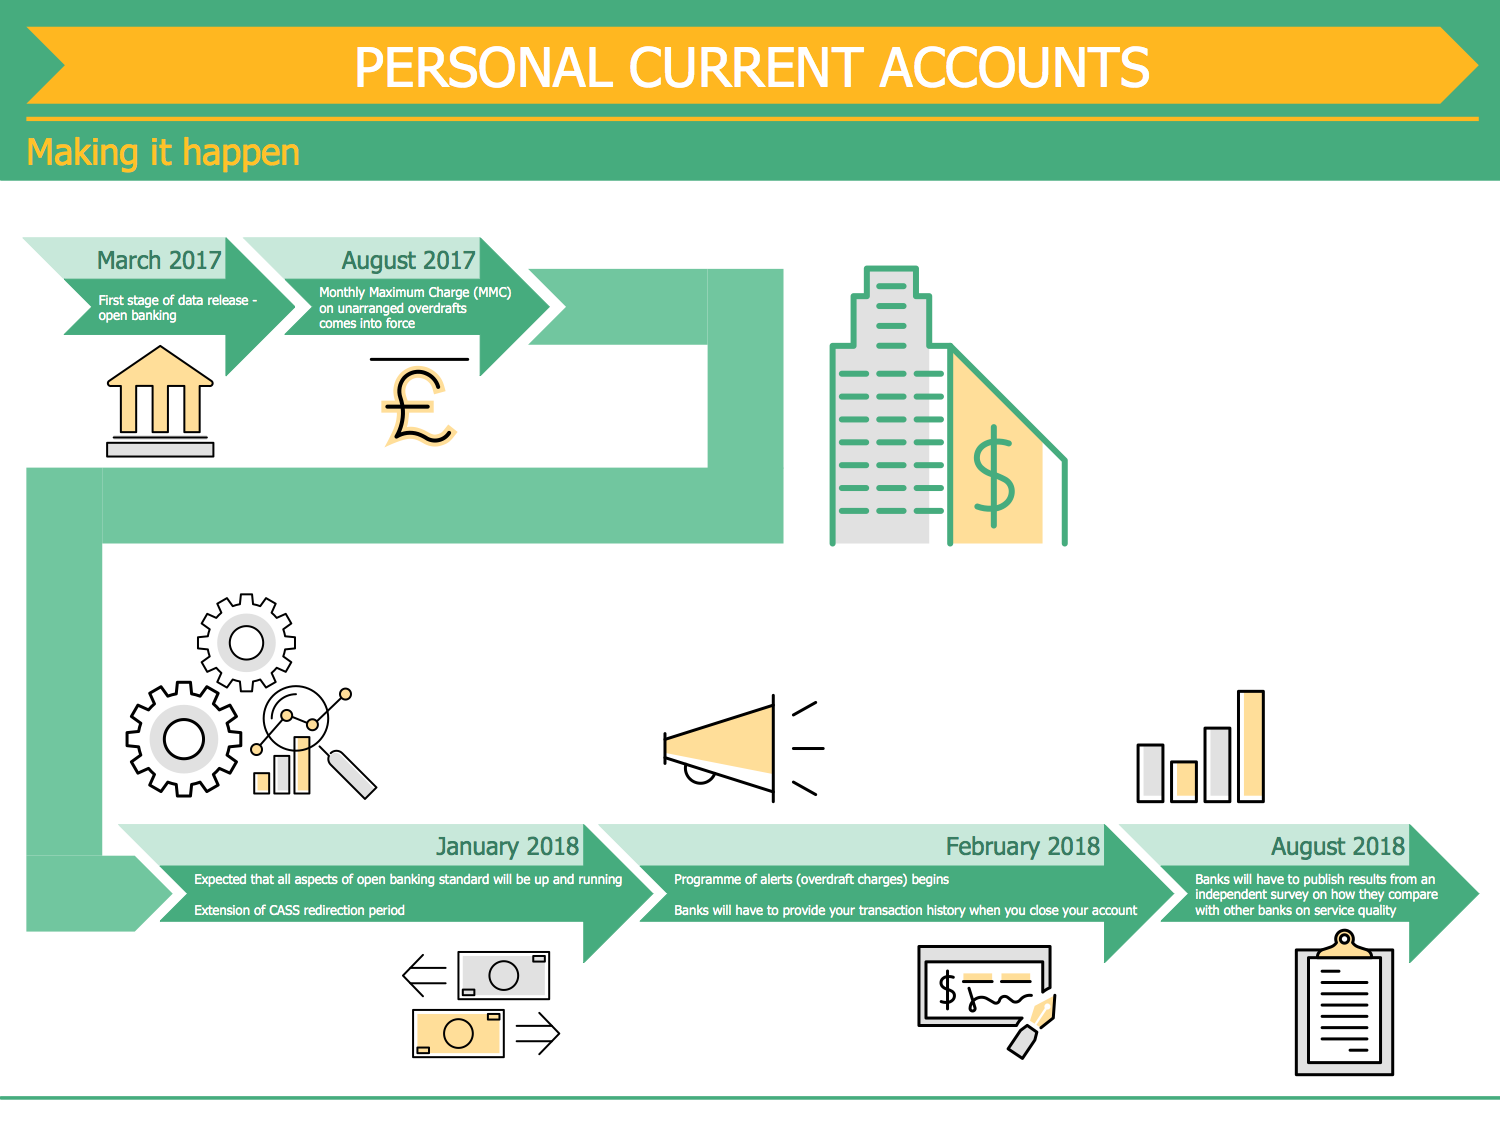 Personal Current Accounts Timeline